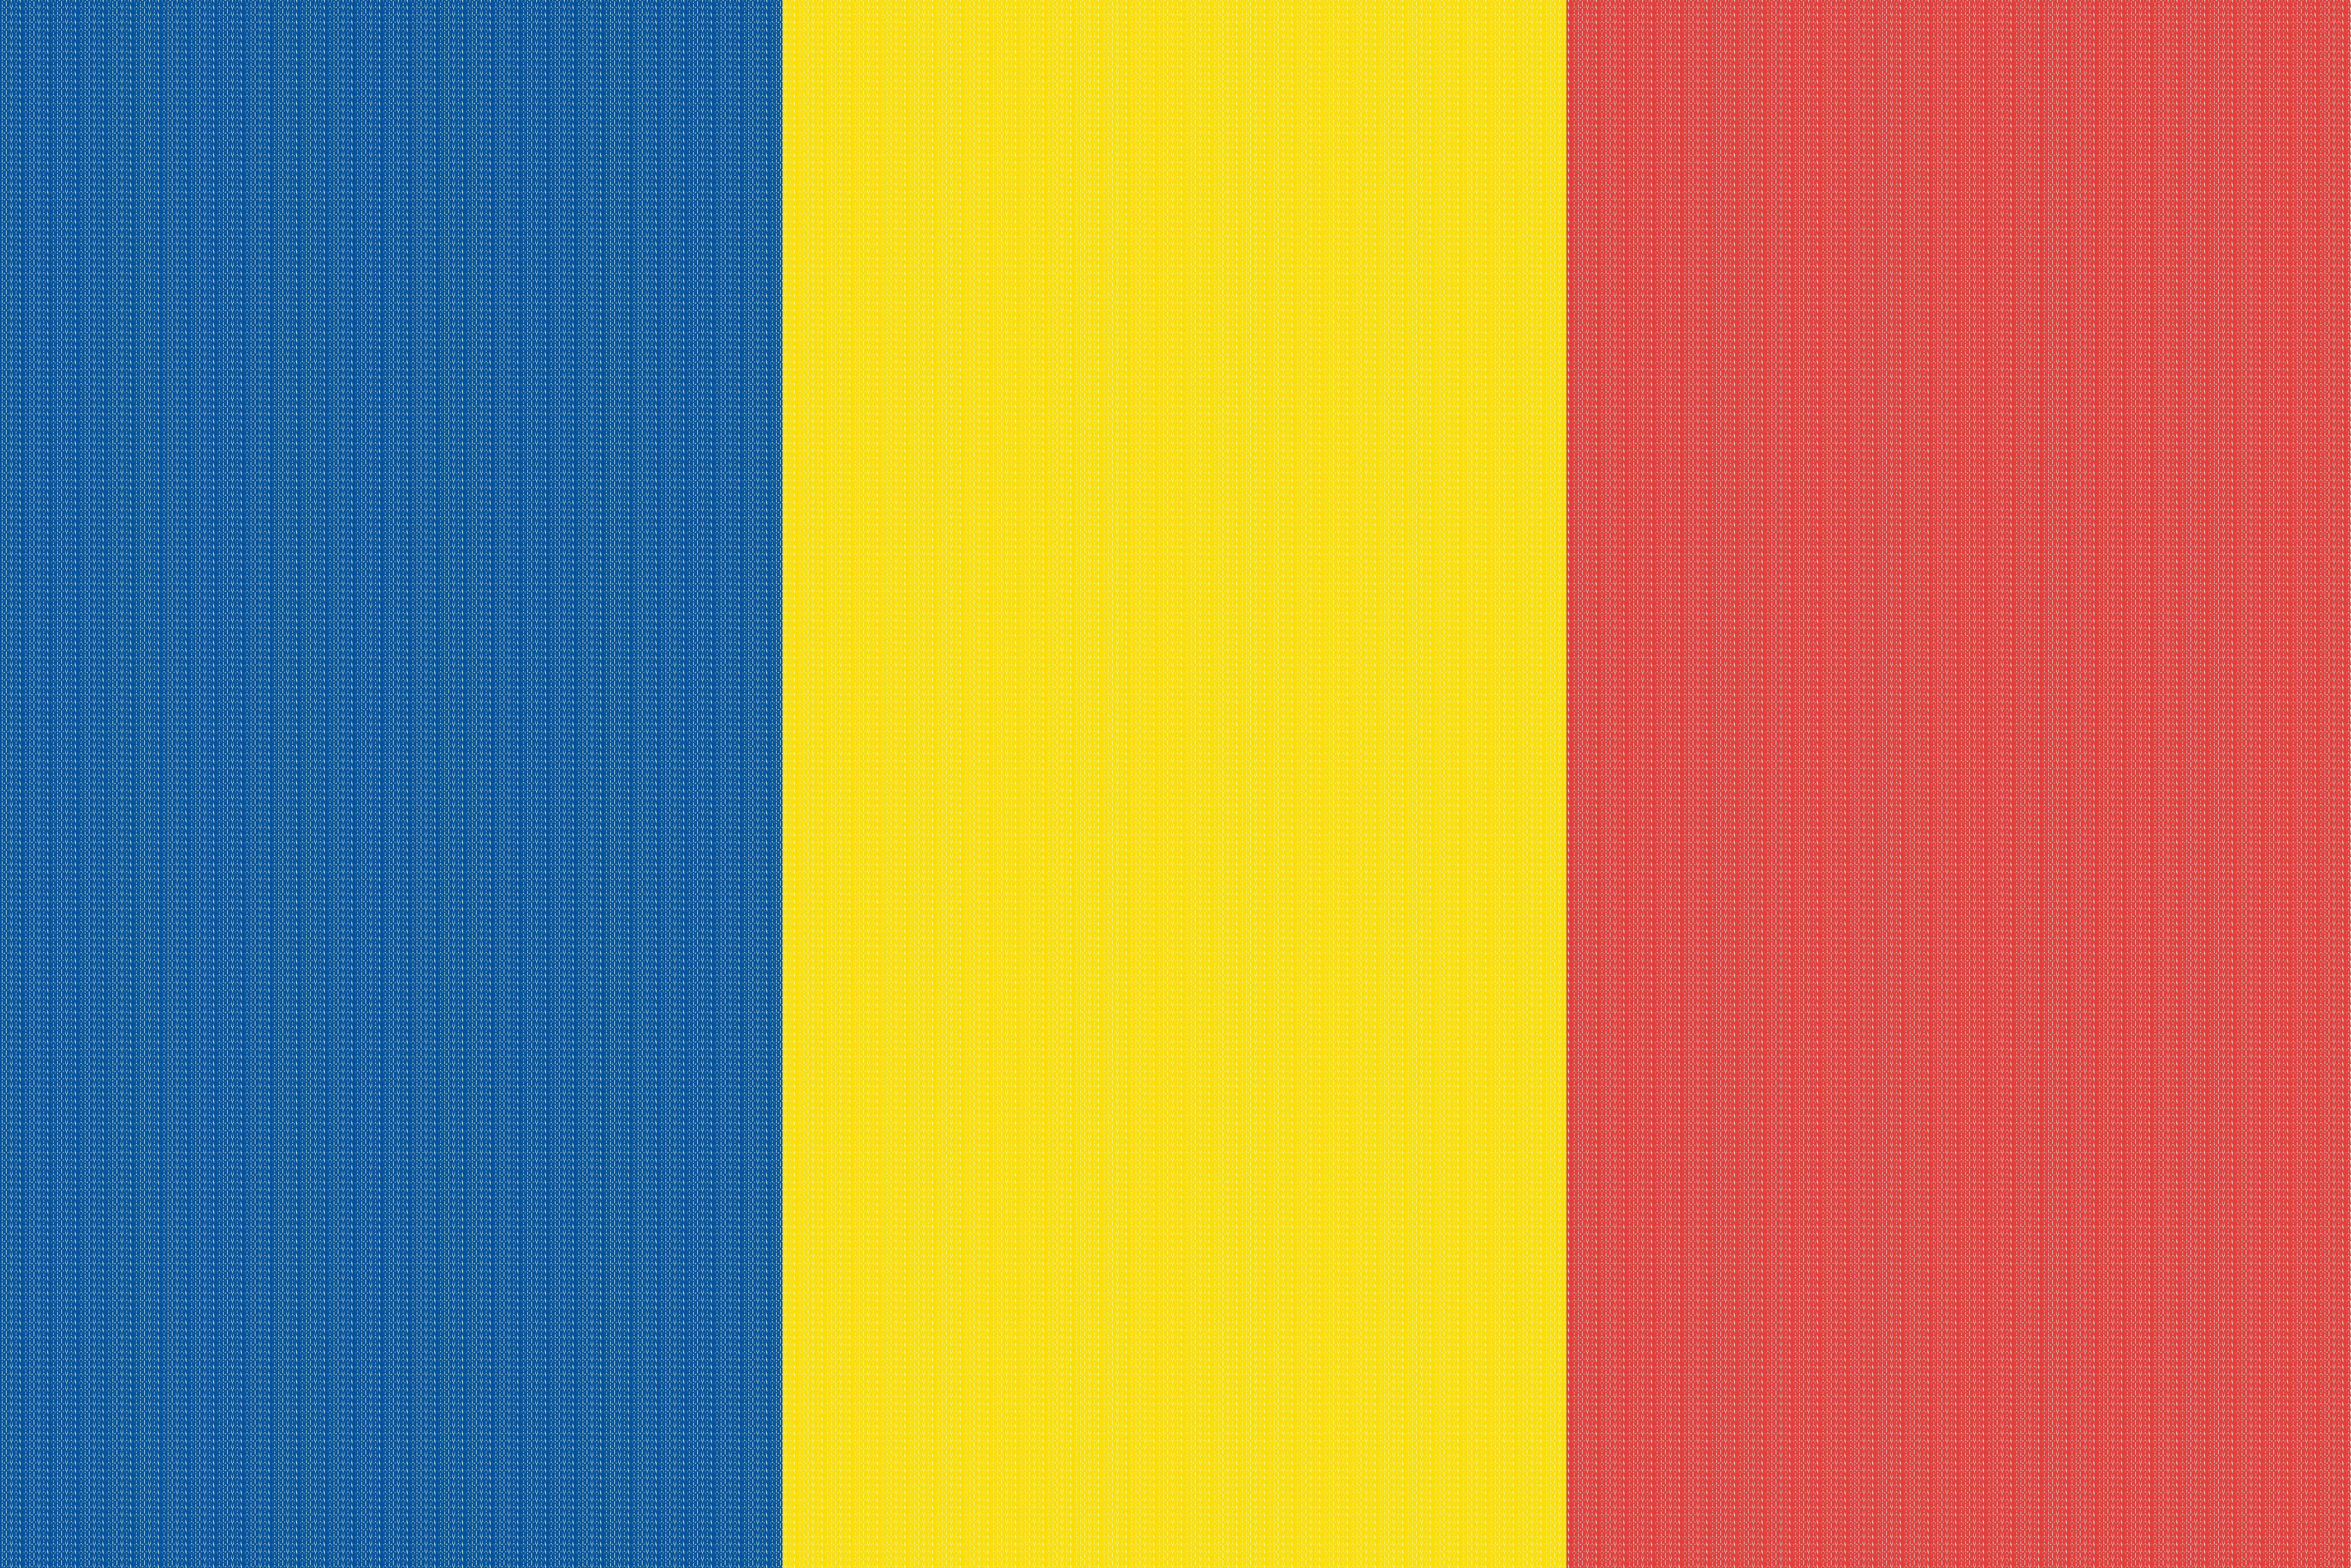 Romania Flag Typography by GELO25 on DeviantArt